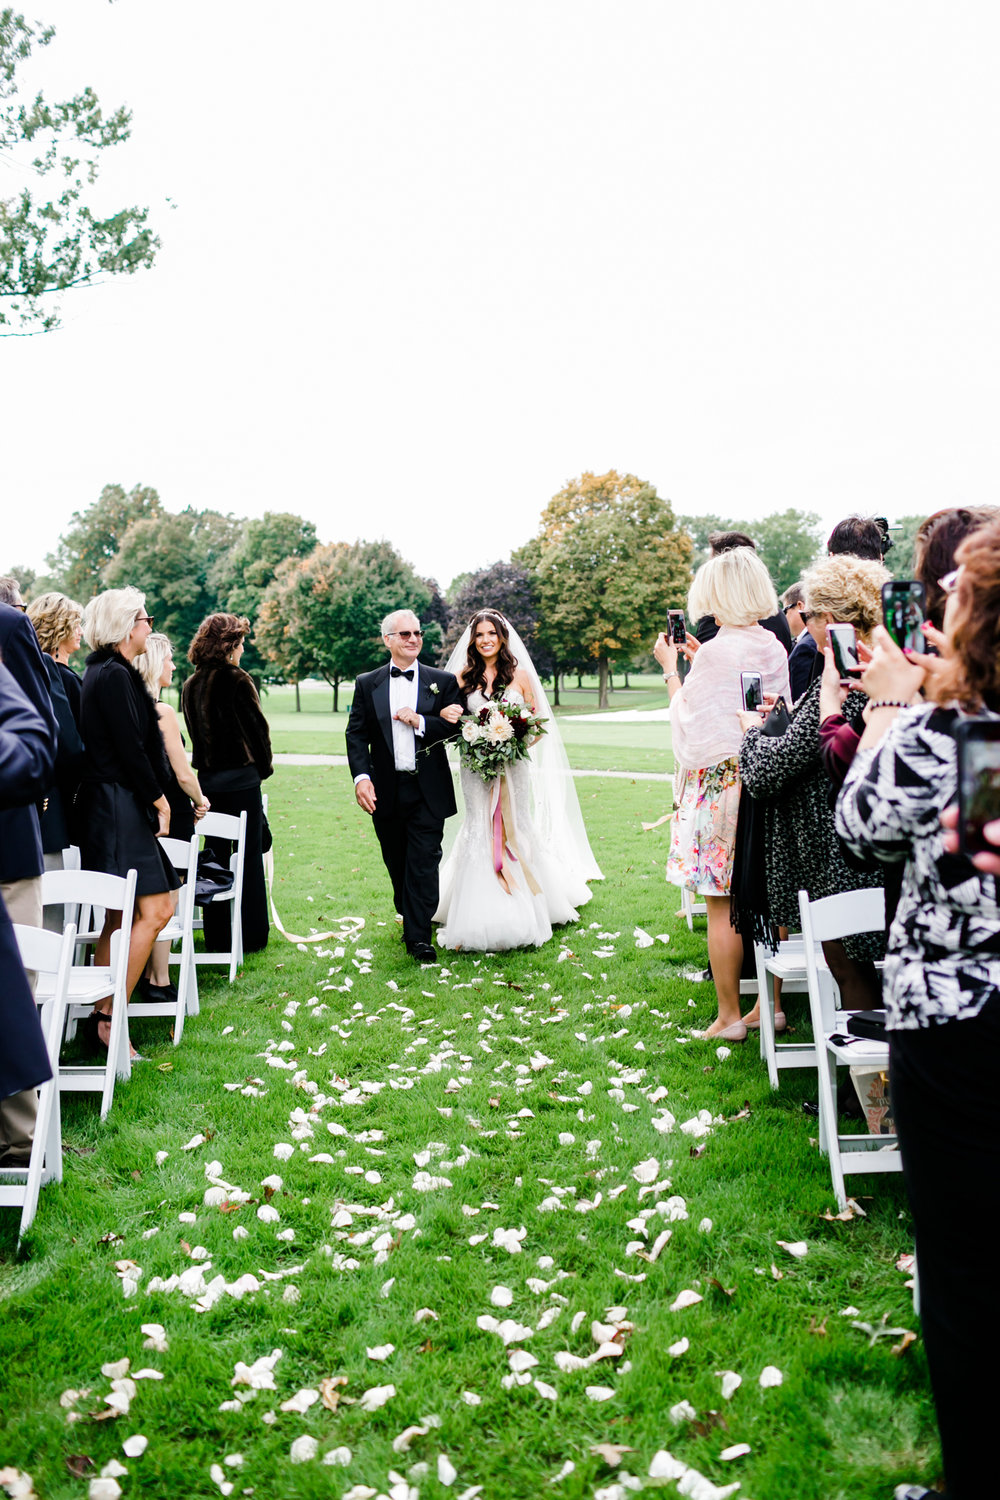 029-grand-rapids-michigan-wedding.jpg